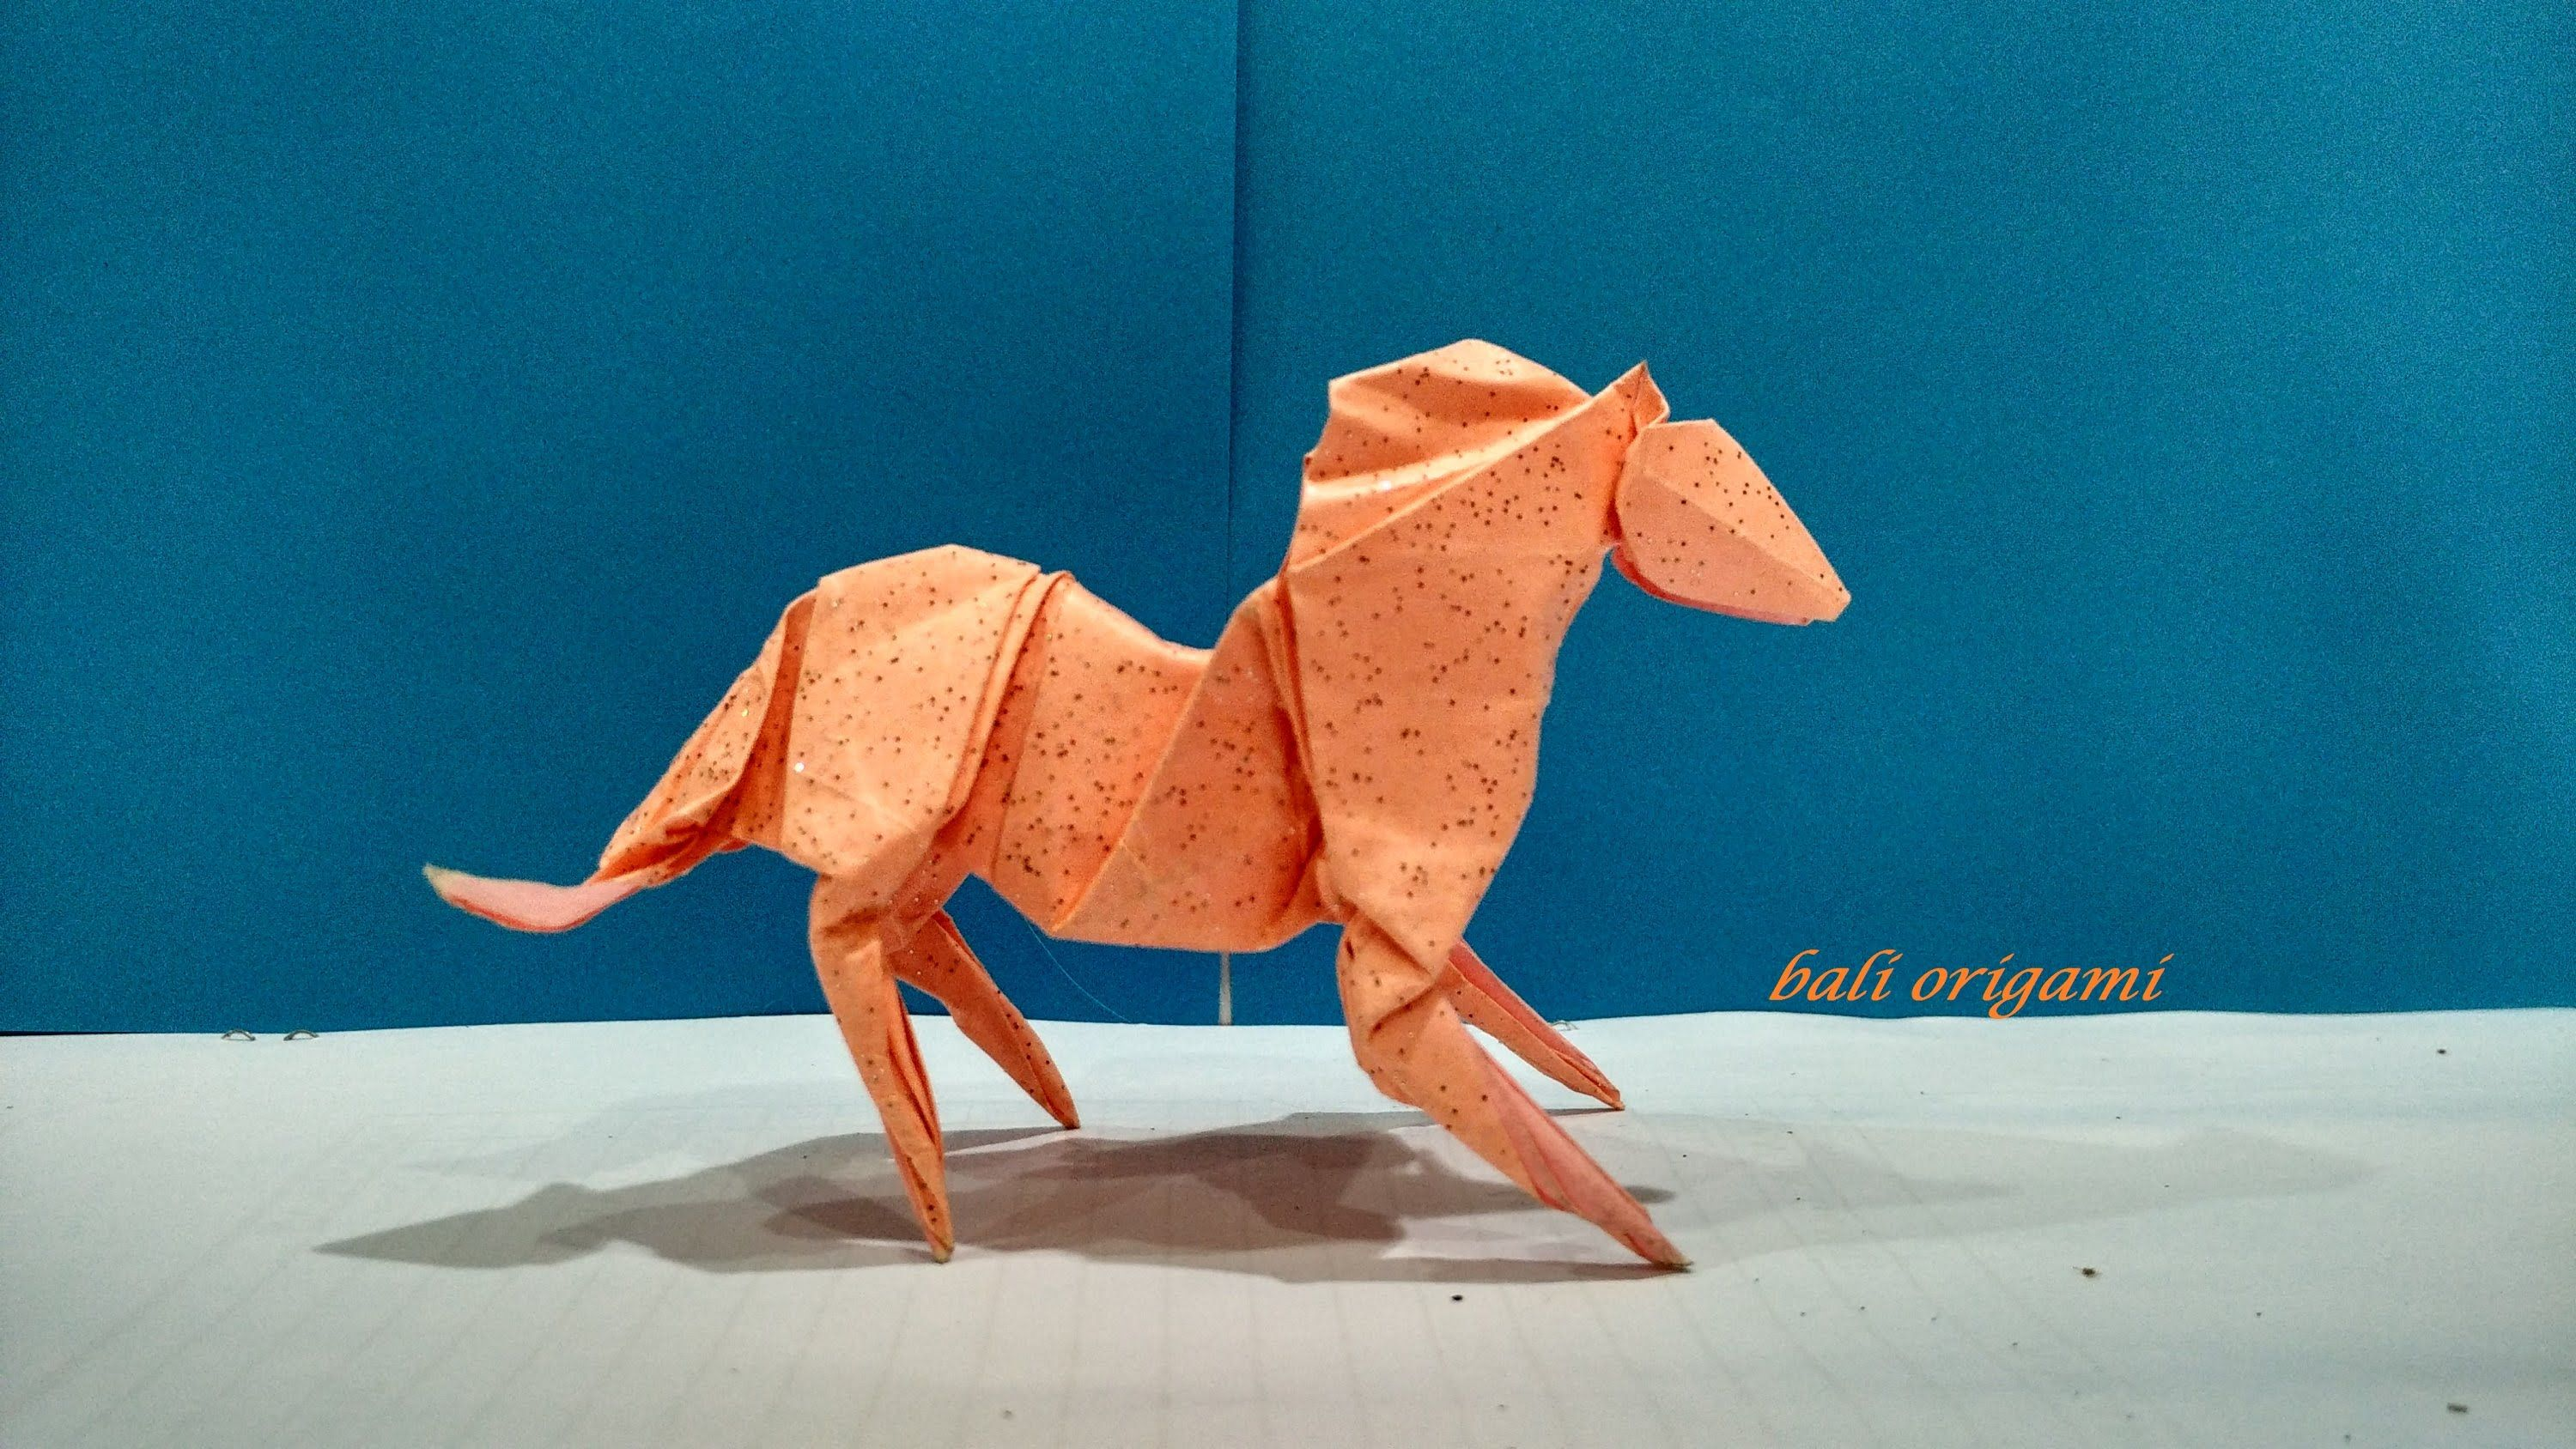 How To Make An Origami Horse Designed By Roman Diaz Difficulty Level Intermediate Shaping May Be A Little Tricky For Beginners